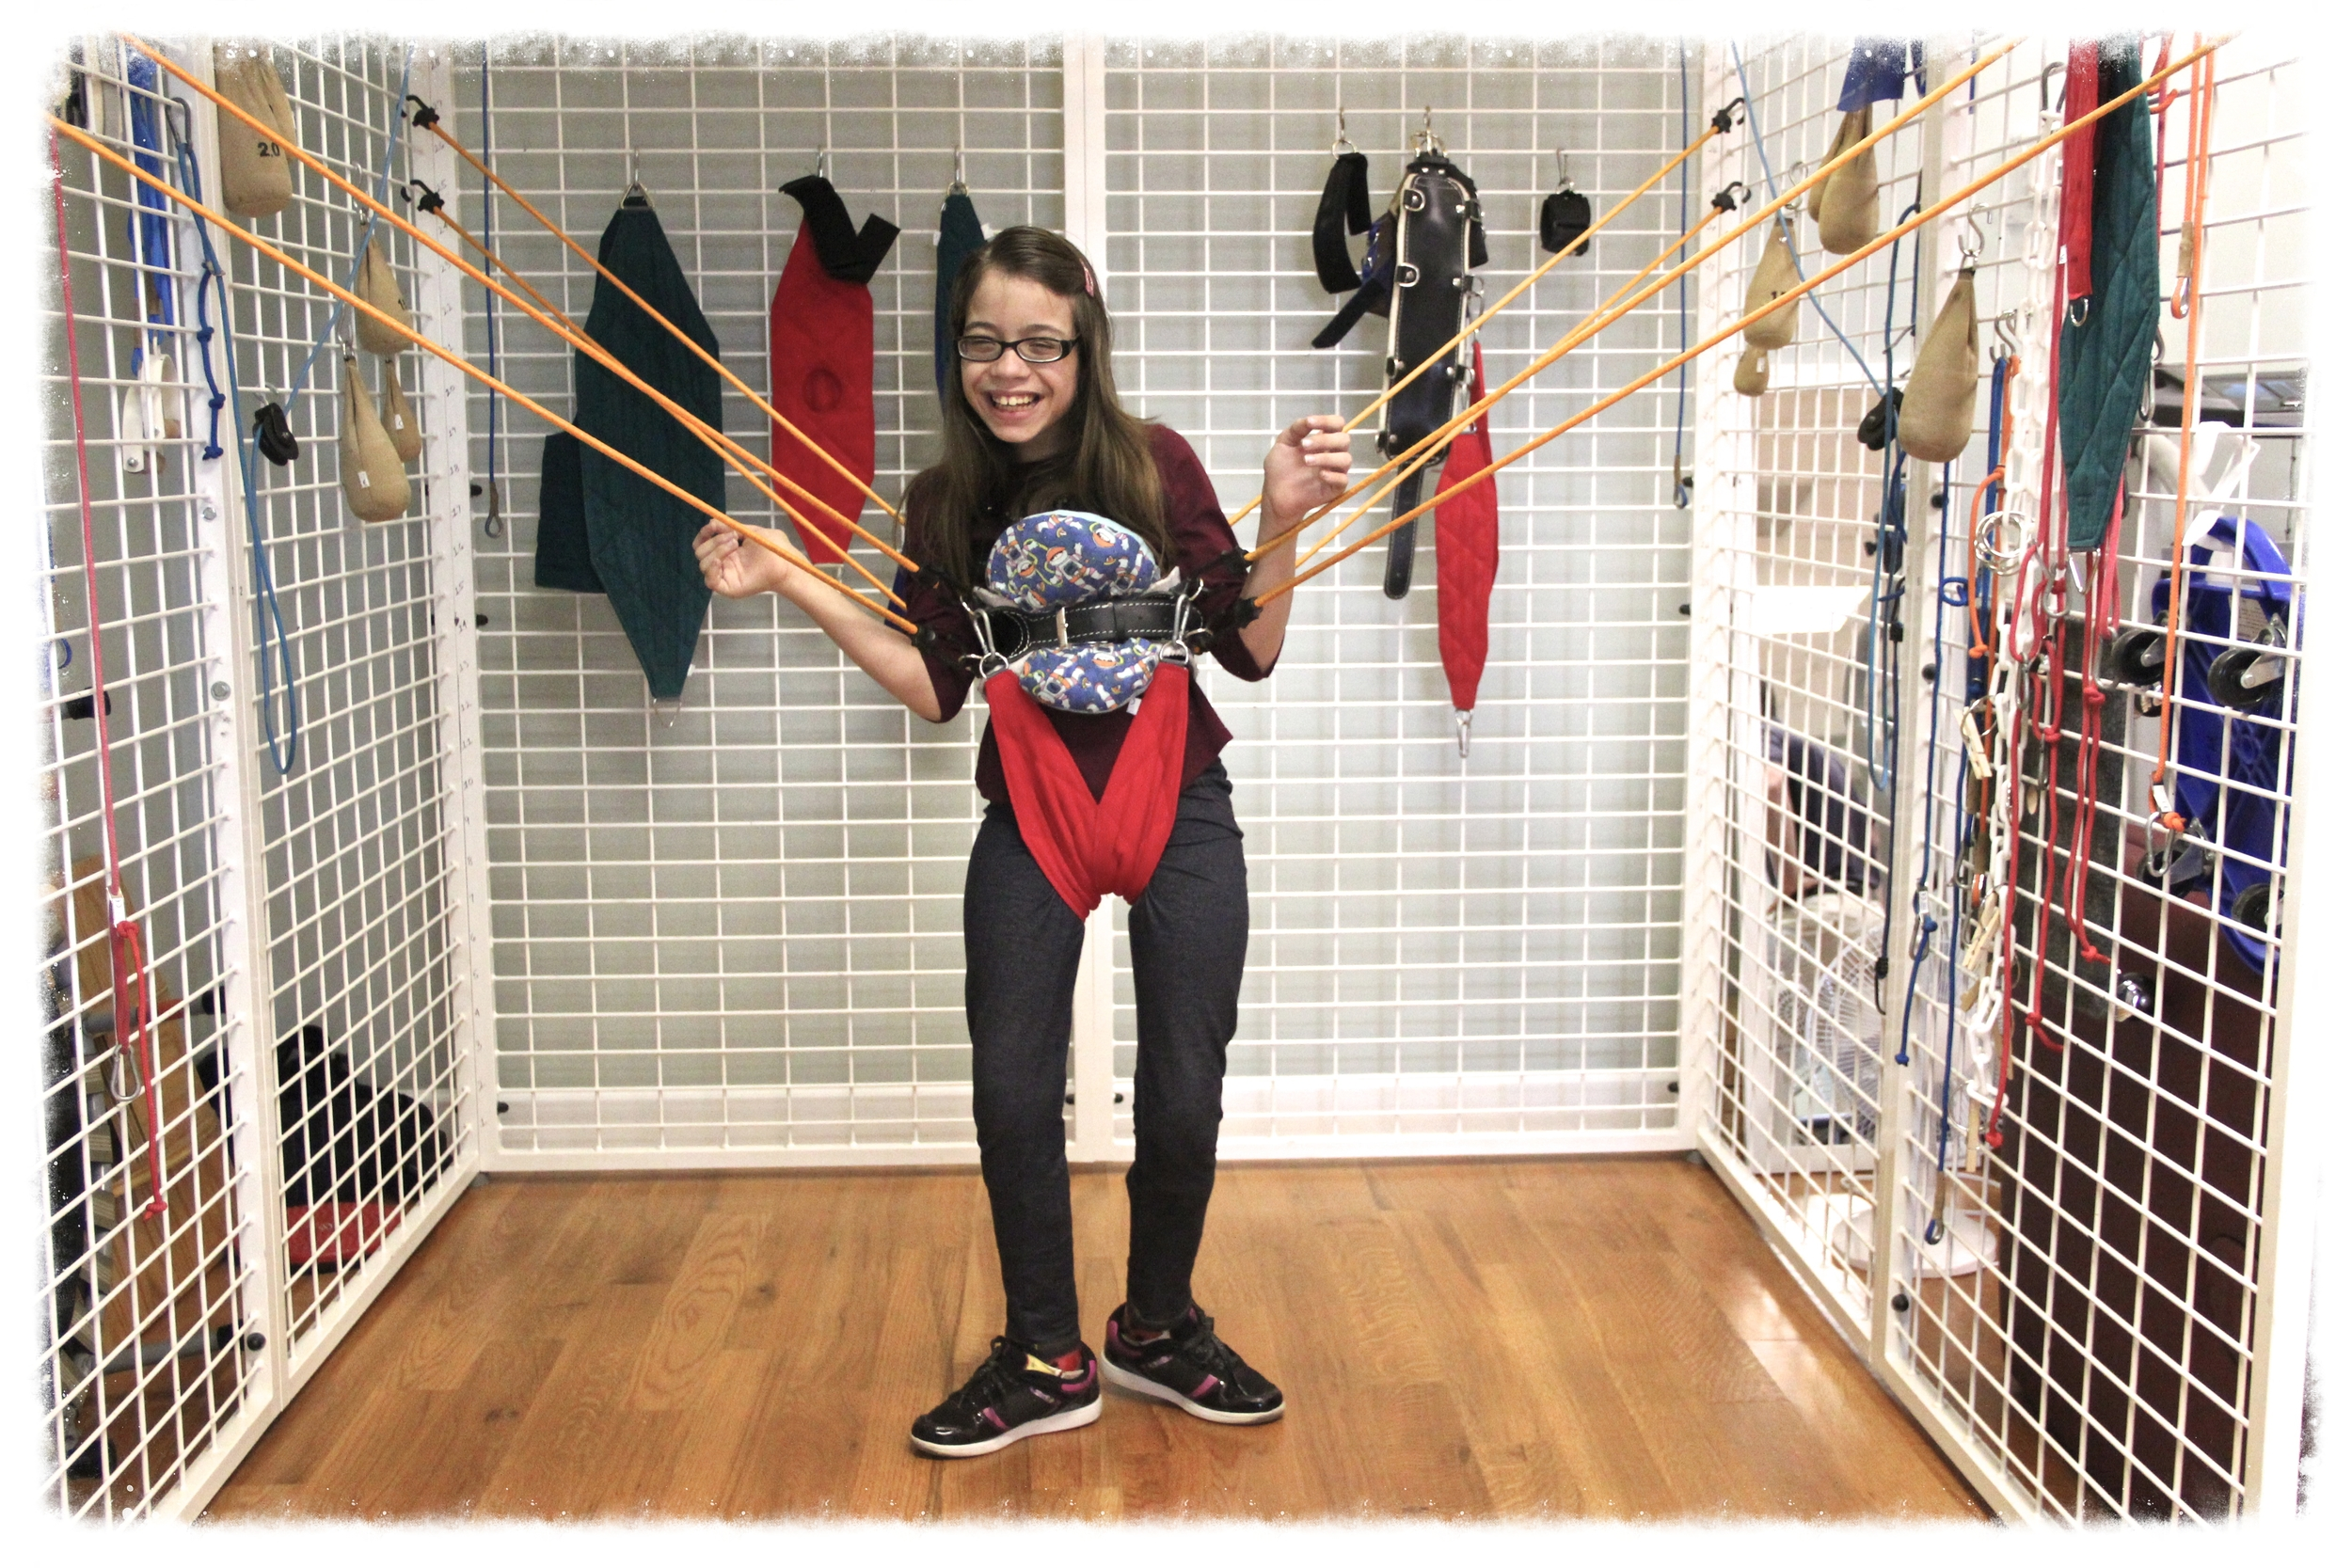 The spider cage allows children to experience independent standing with freedom of movement.